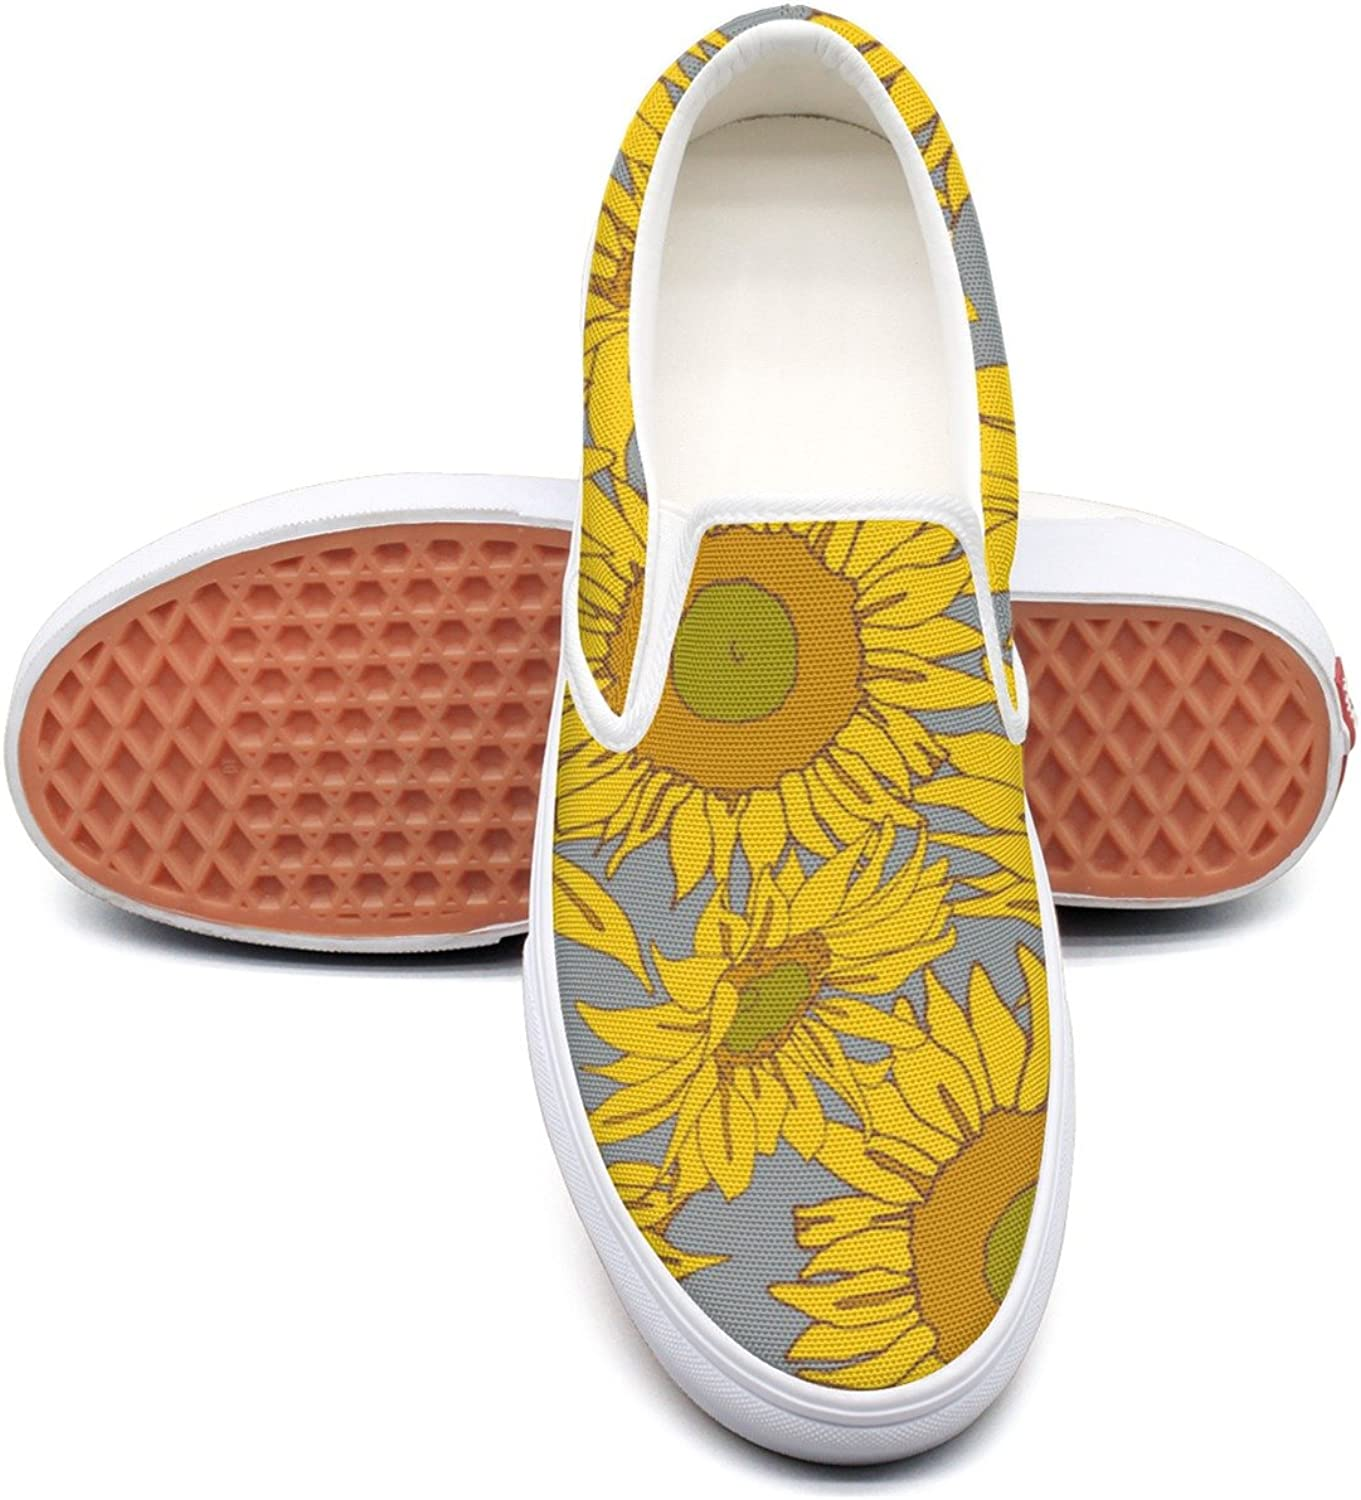 Hjkggd fgfds Casual Floral Fall Autumn Summer Sunflower Attractive Women Canvas shoes